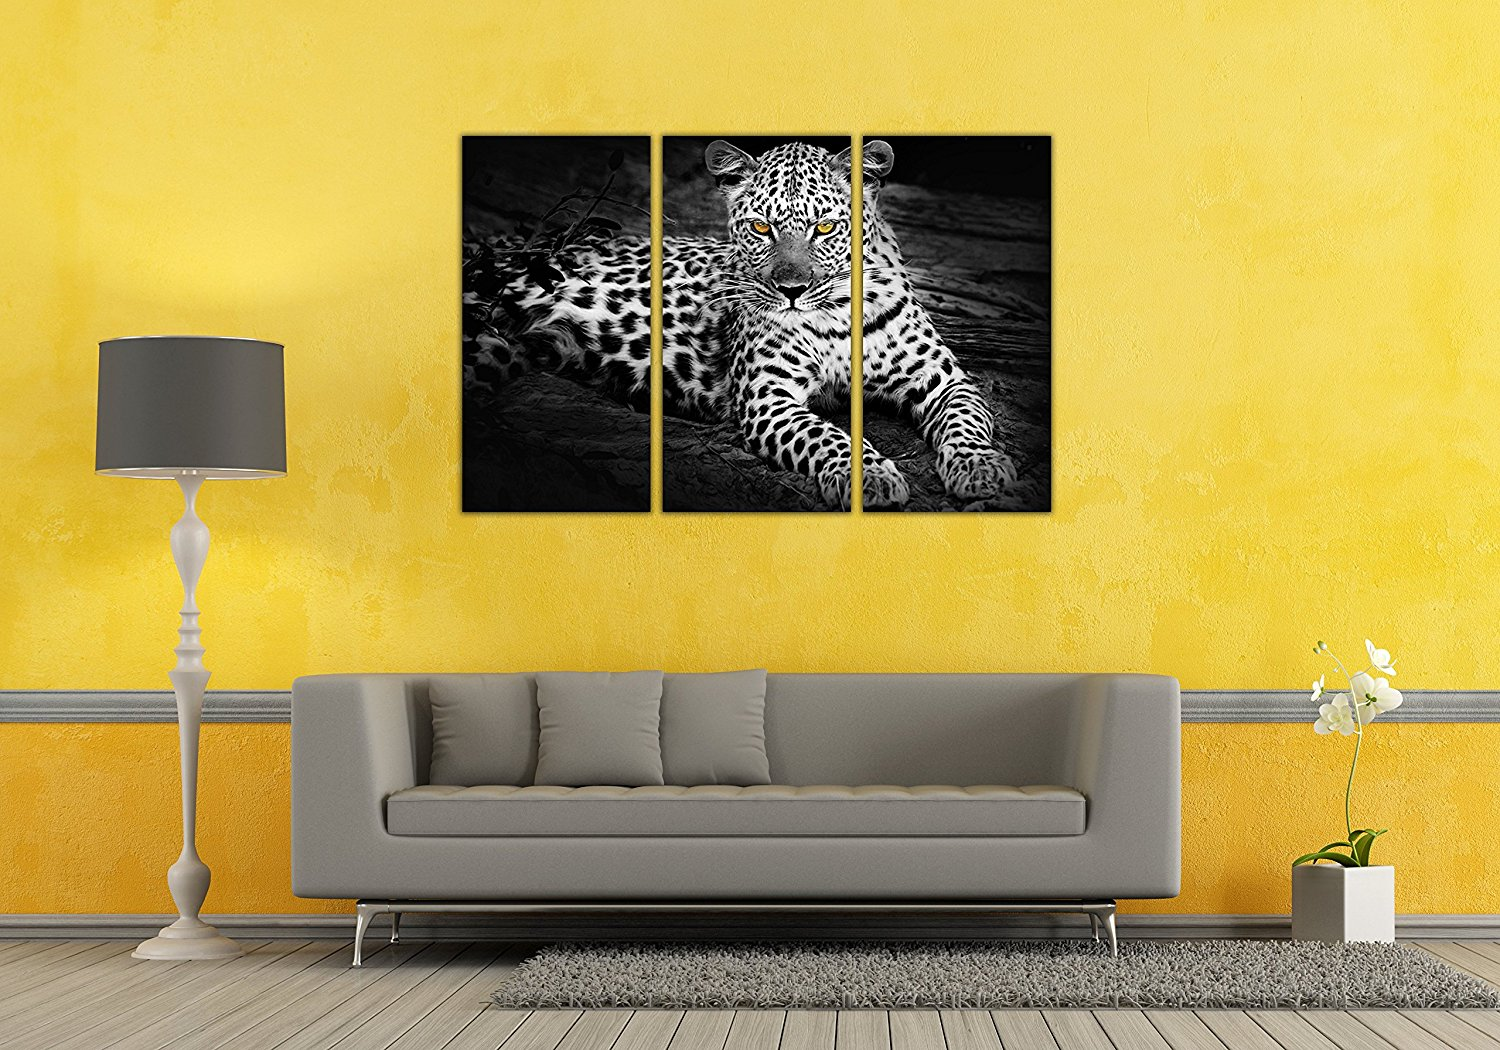 Fancy 3 Piece Black And White Wall Art Sketch - Wall Art Collections ...